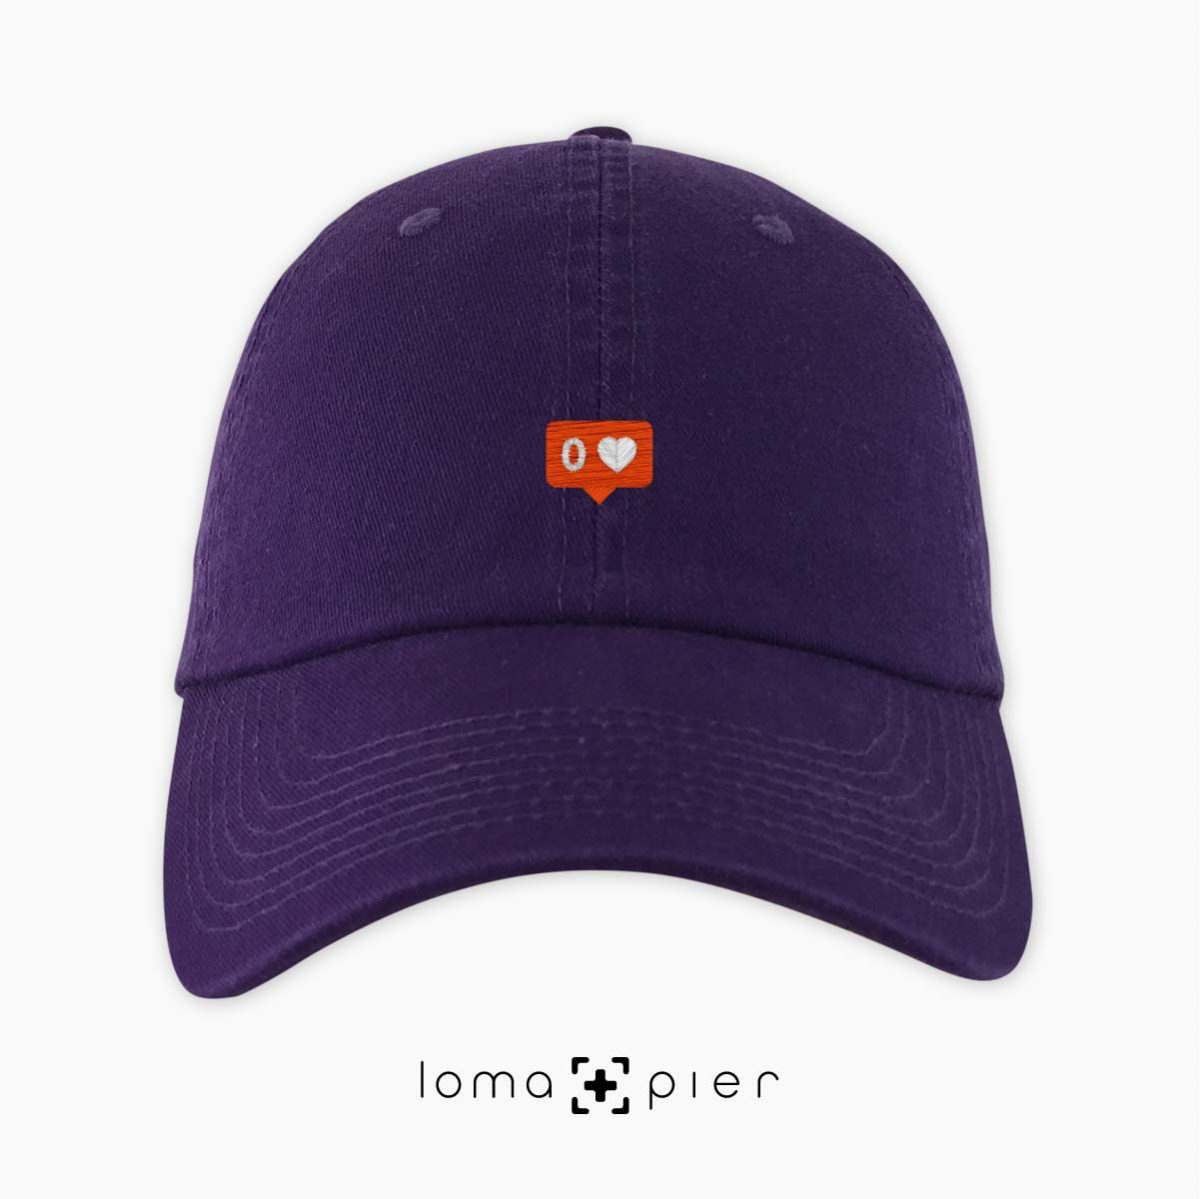 NO LOVE icon dad hat in purple by loma+pier hat store